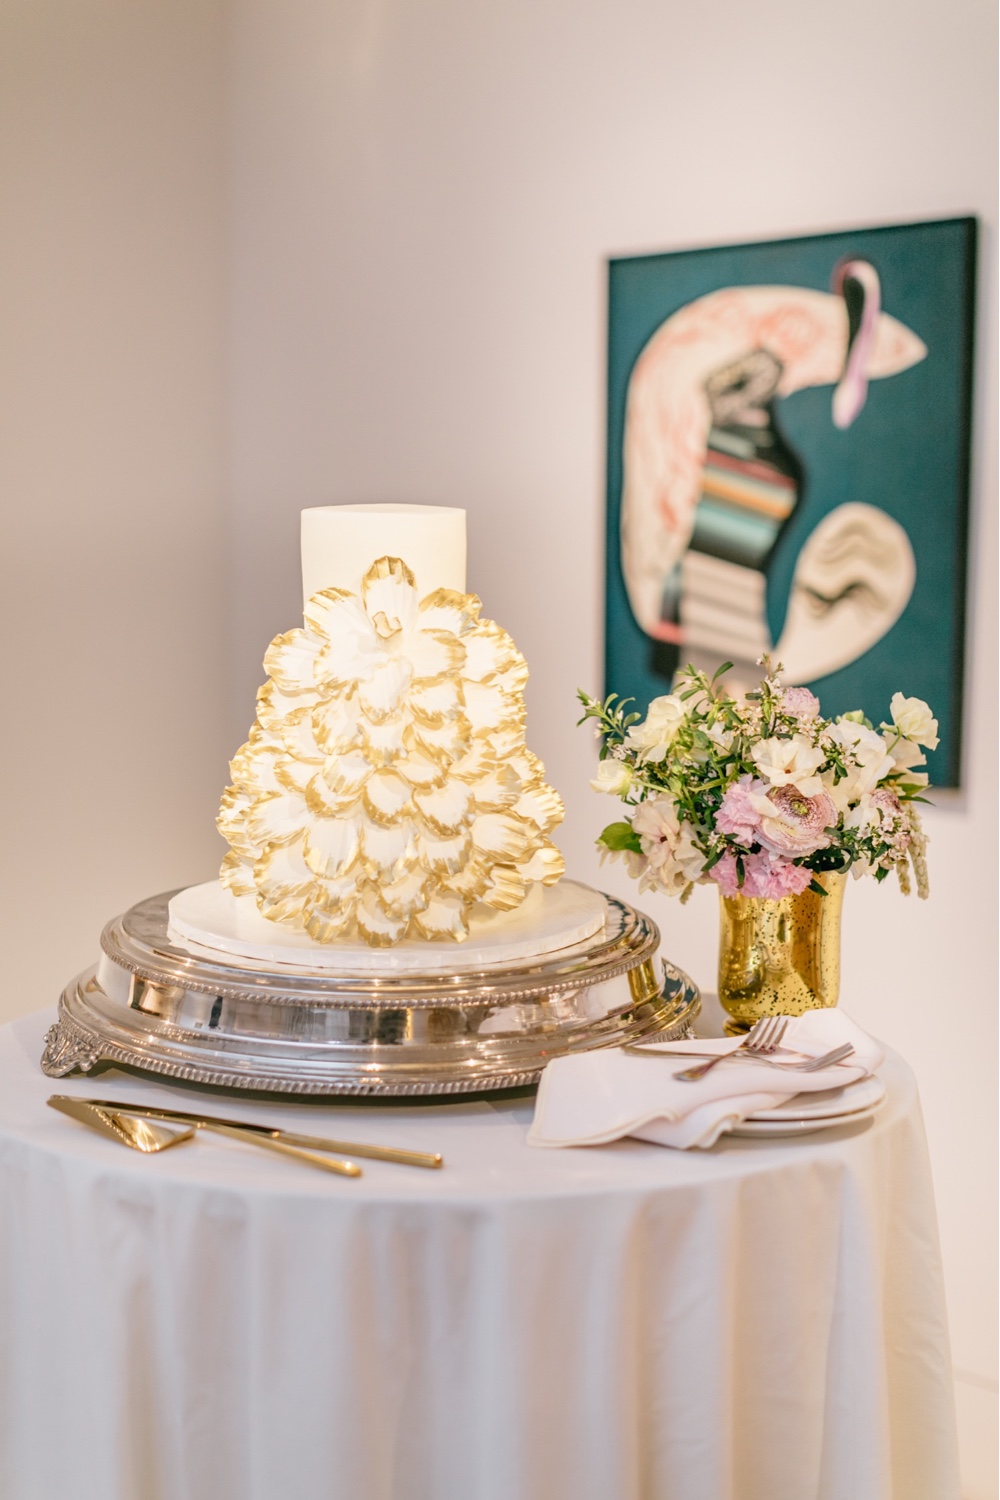 233 Wedding Cake PAFA Chic Elegant Wedding Cake